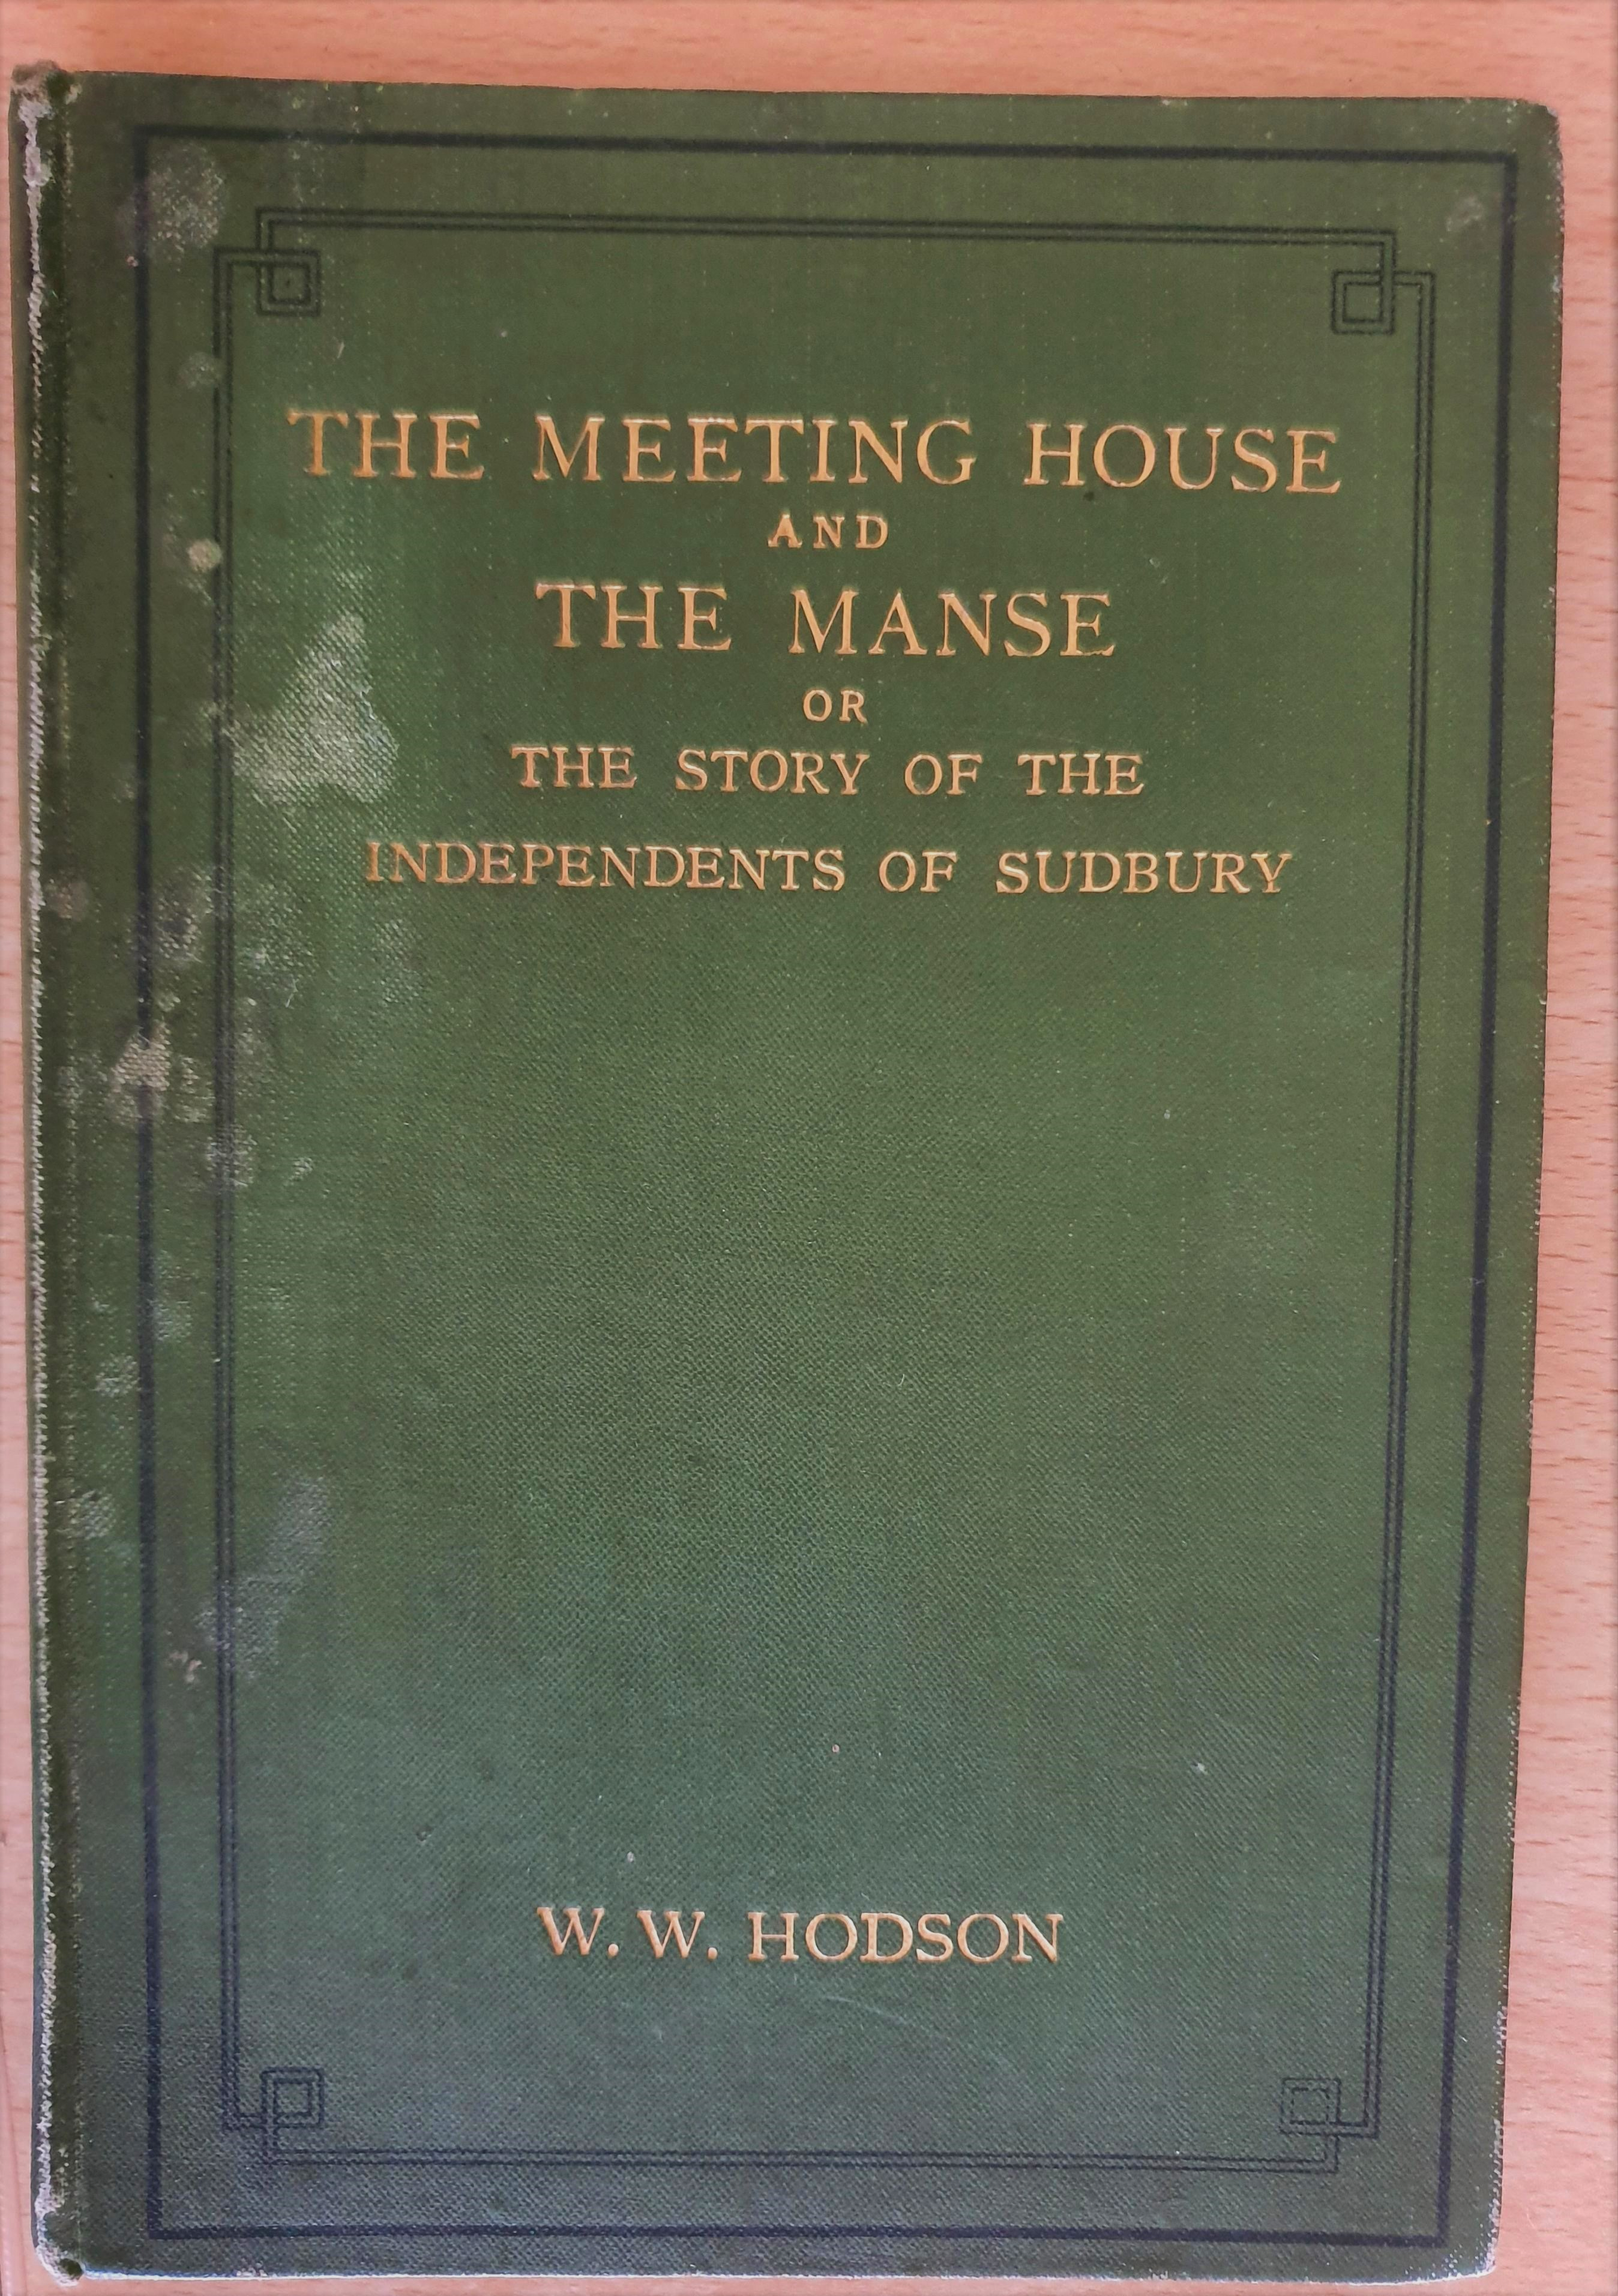 Image for The Meeting House And The Manse. Or, The Story Of the Independents Of Sudbury. By Walter Walter Hodson .